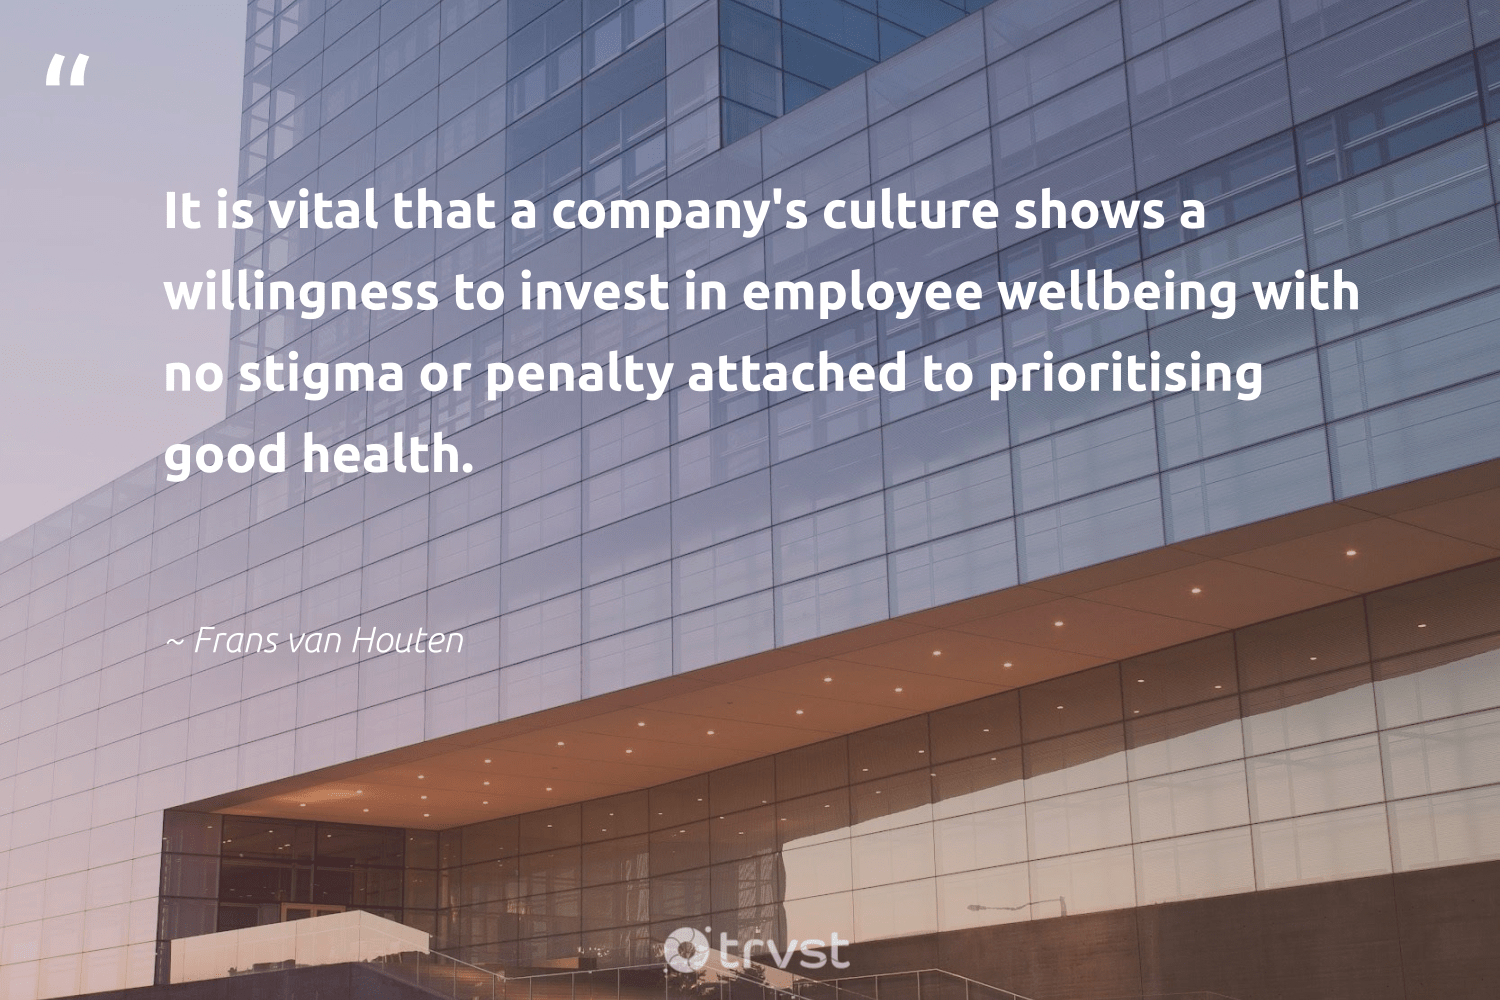 """""""It is vital that a company's culture shows a willingness to invest in employee wellbeing with no stigma or penalty attached to prioritising good health.""""  - Frans van Houten #trvst #quotes #wellbeing #health #healthyliving #healthy #ethicalbusiness #changemakers #socialchange #wellness #healthylife #giveback"""